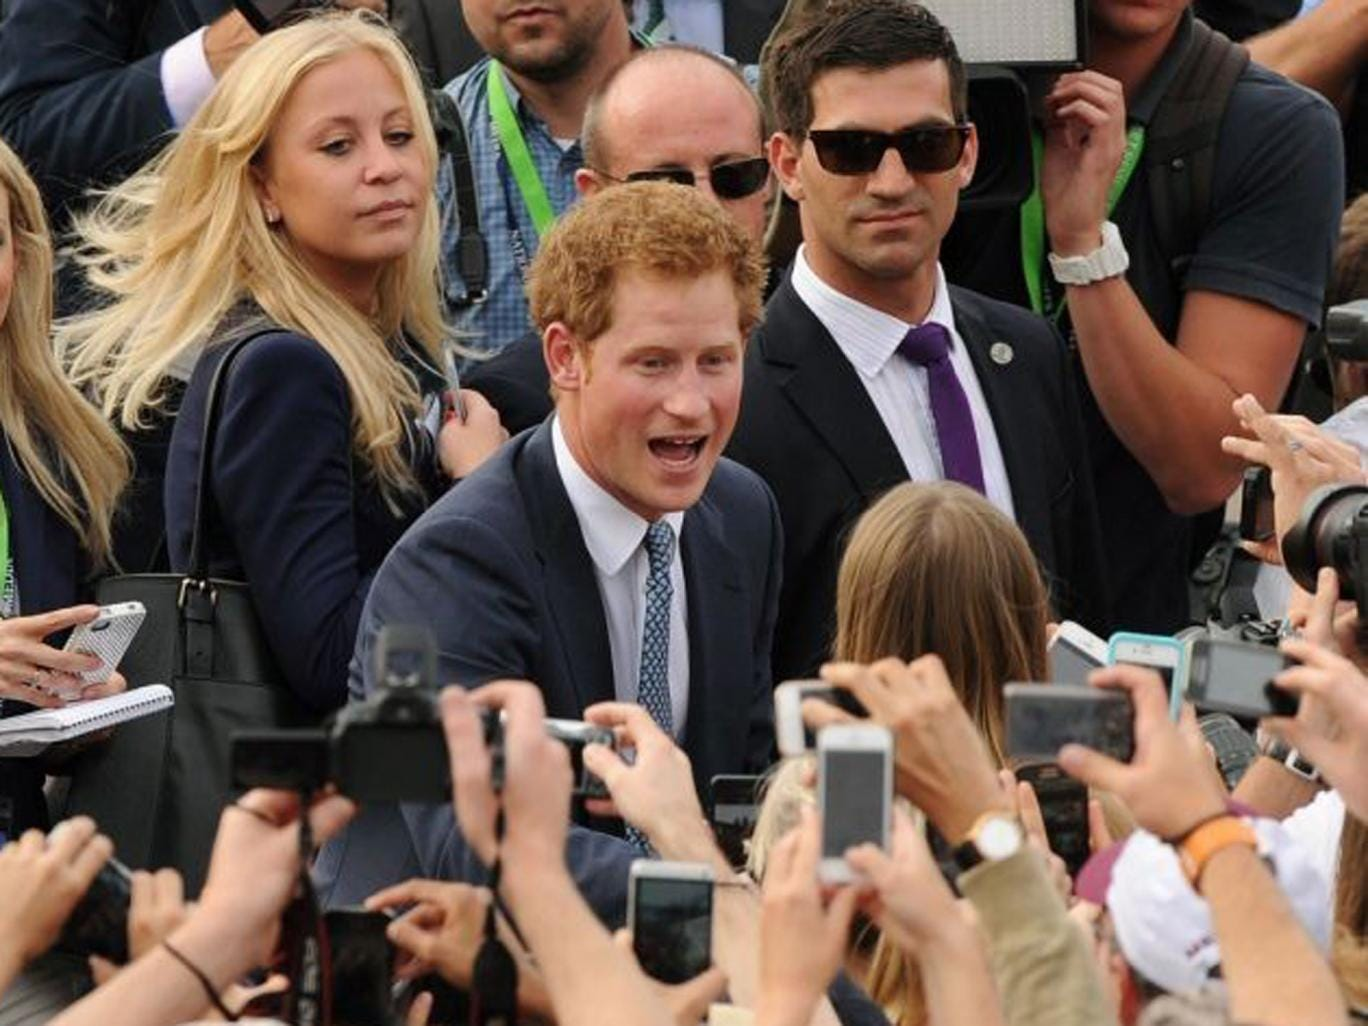 Prince Harry, who is in Sydney representing the Royal family at the International Fleet Review, meets members of the public during a walk about at Campbell's Cove in Sydney Harbour.